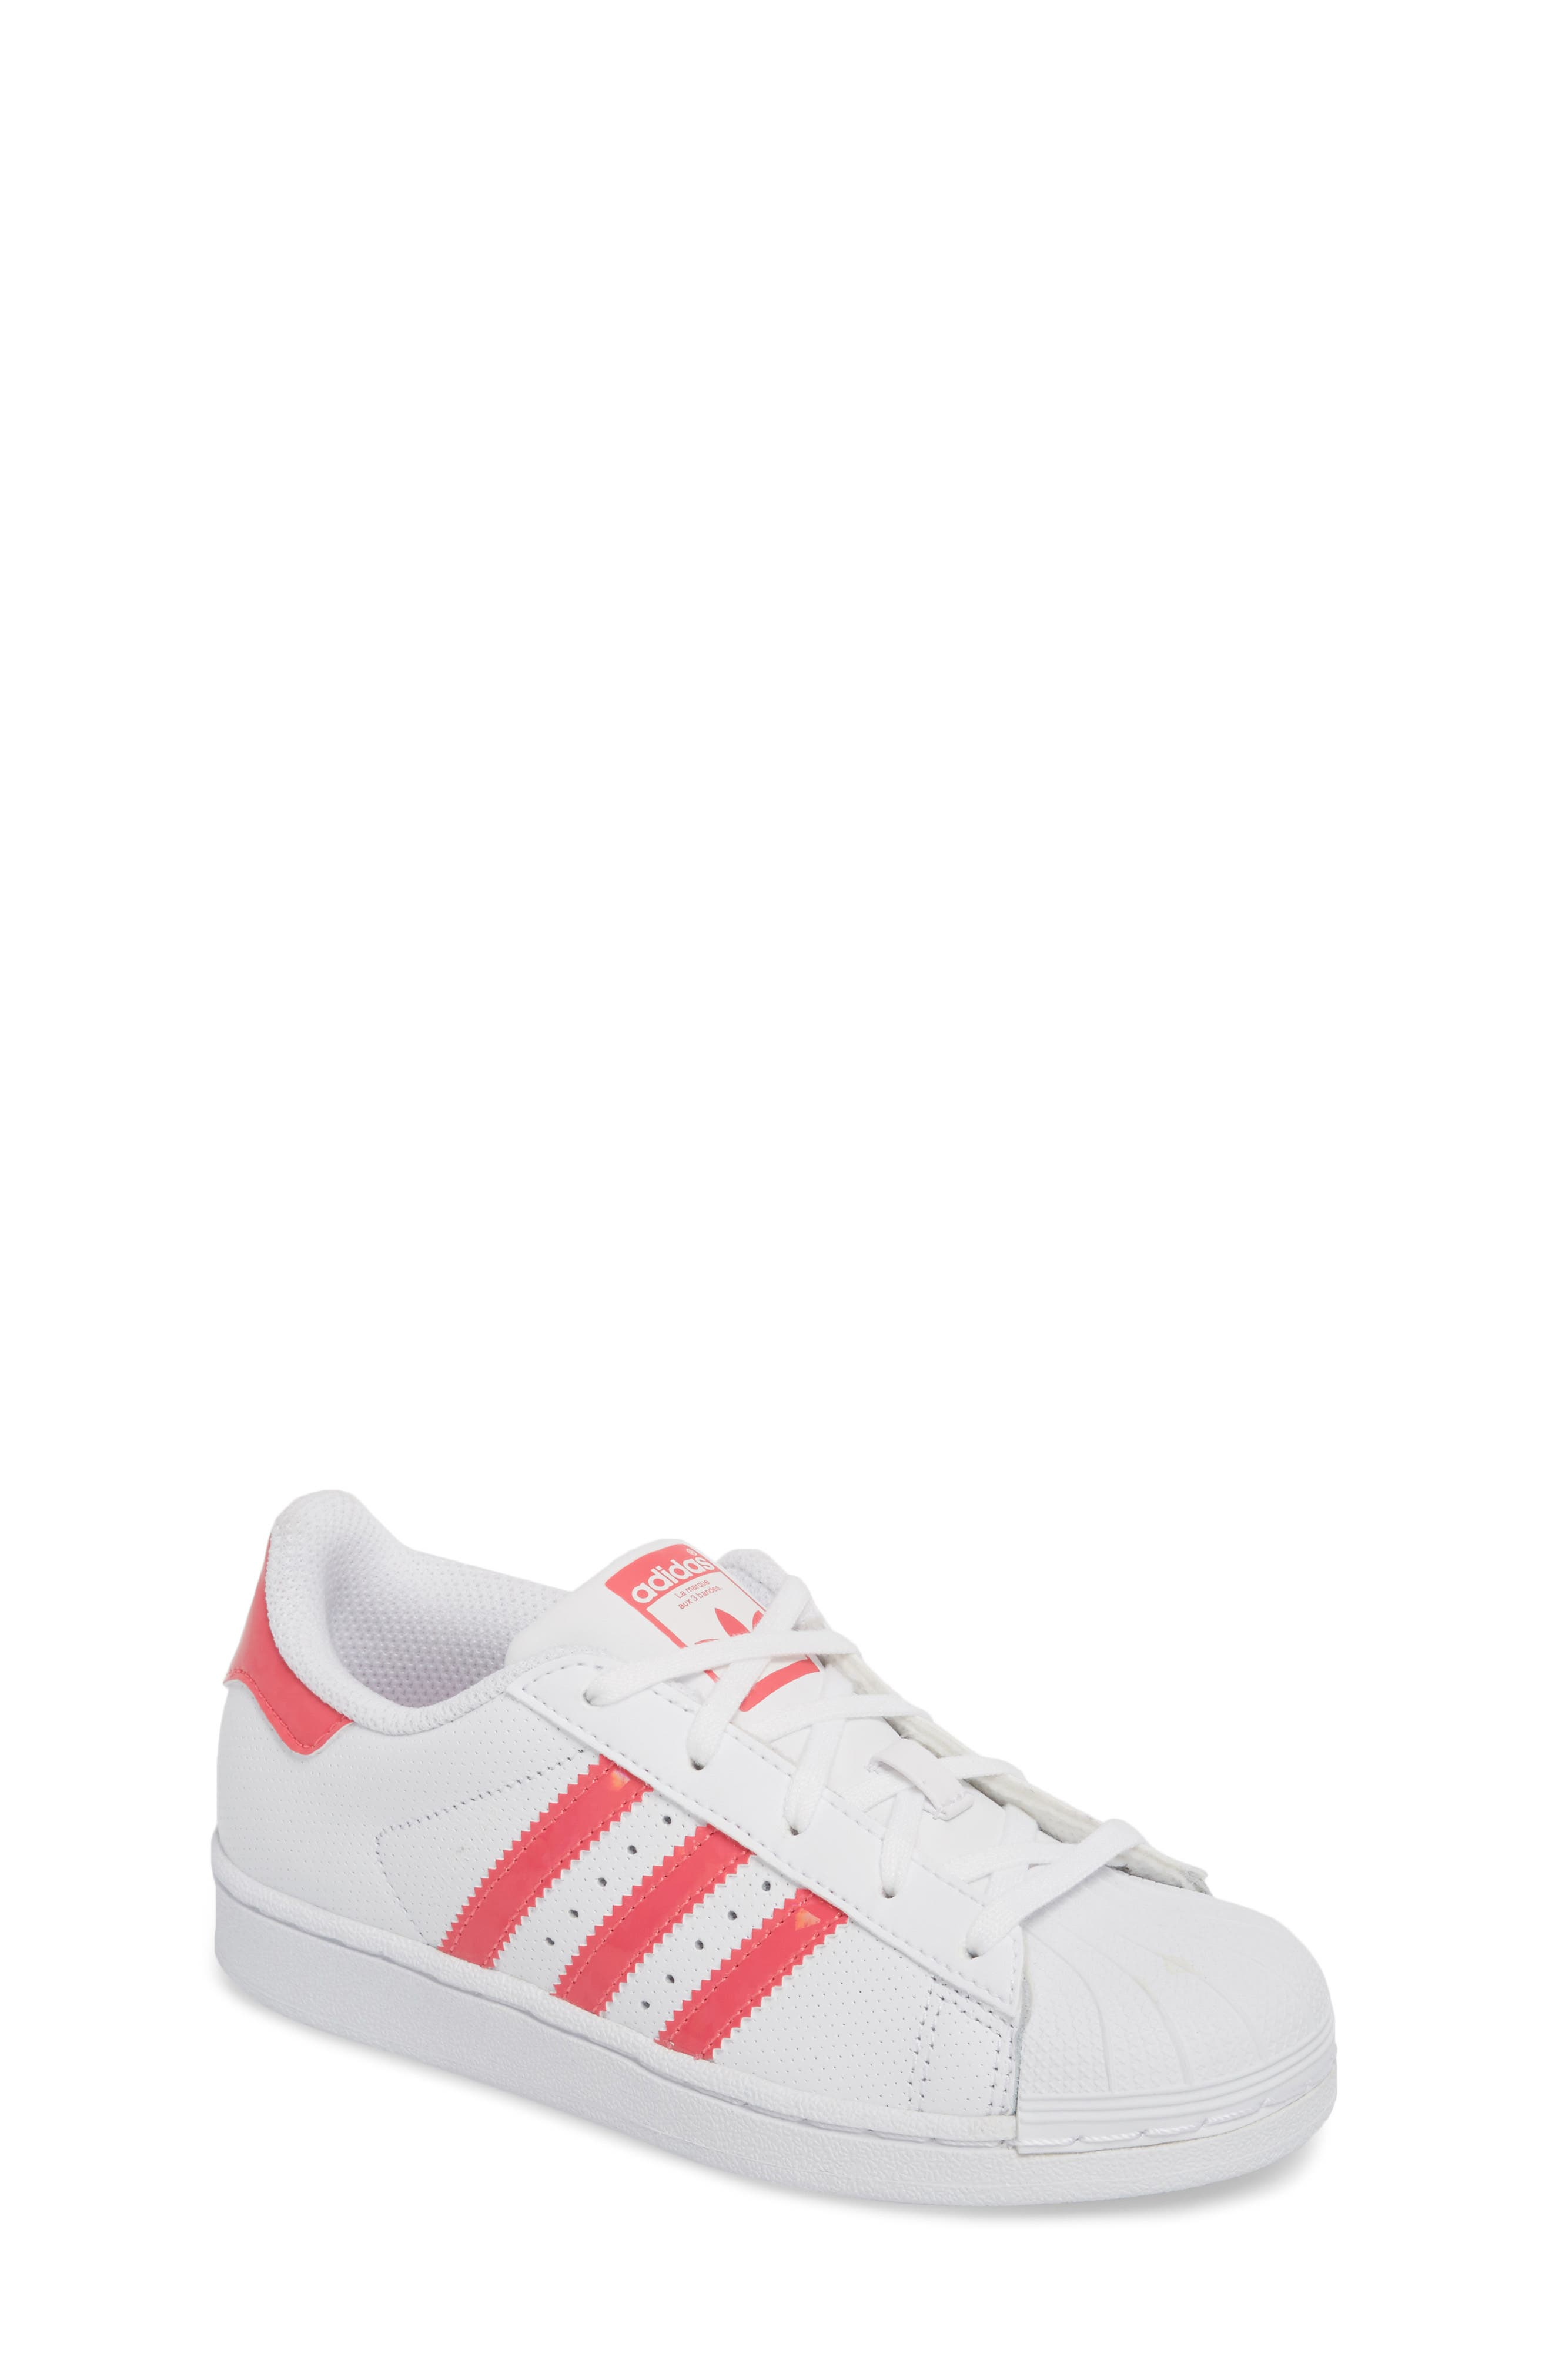 Superstar Perforated Low Top Sneaker,                             Main thumbnail 1, color,